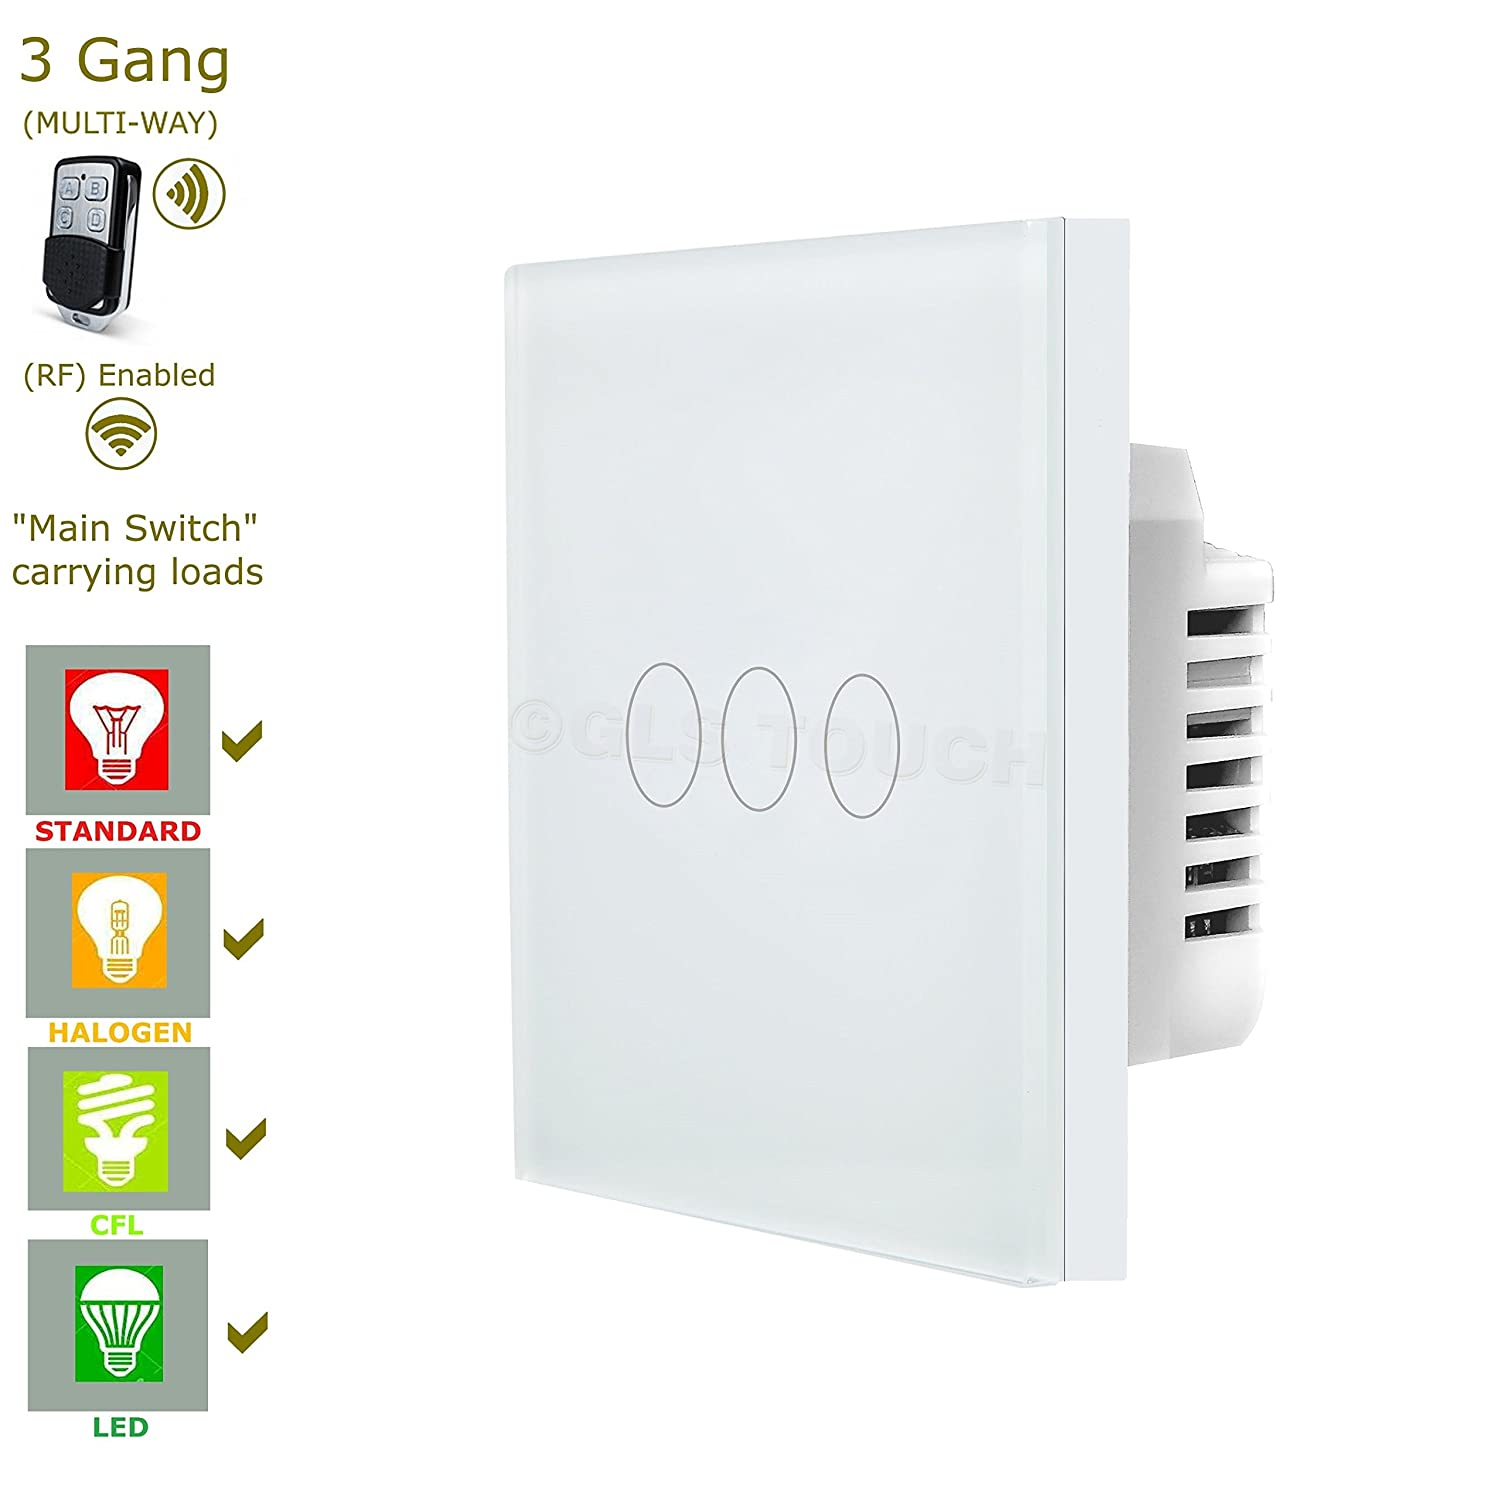 design of trusted build review rf reviews lightwave light generation switch sockets and smart